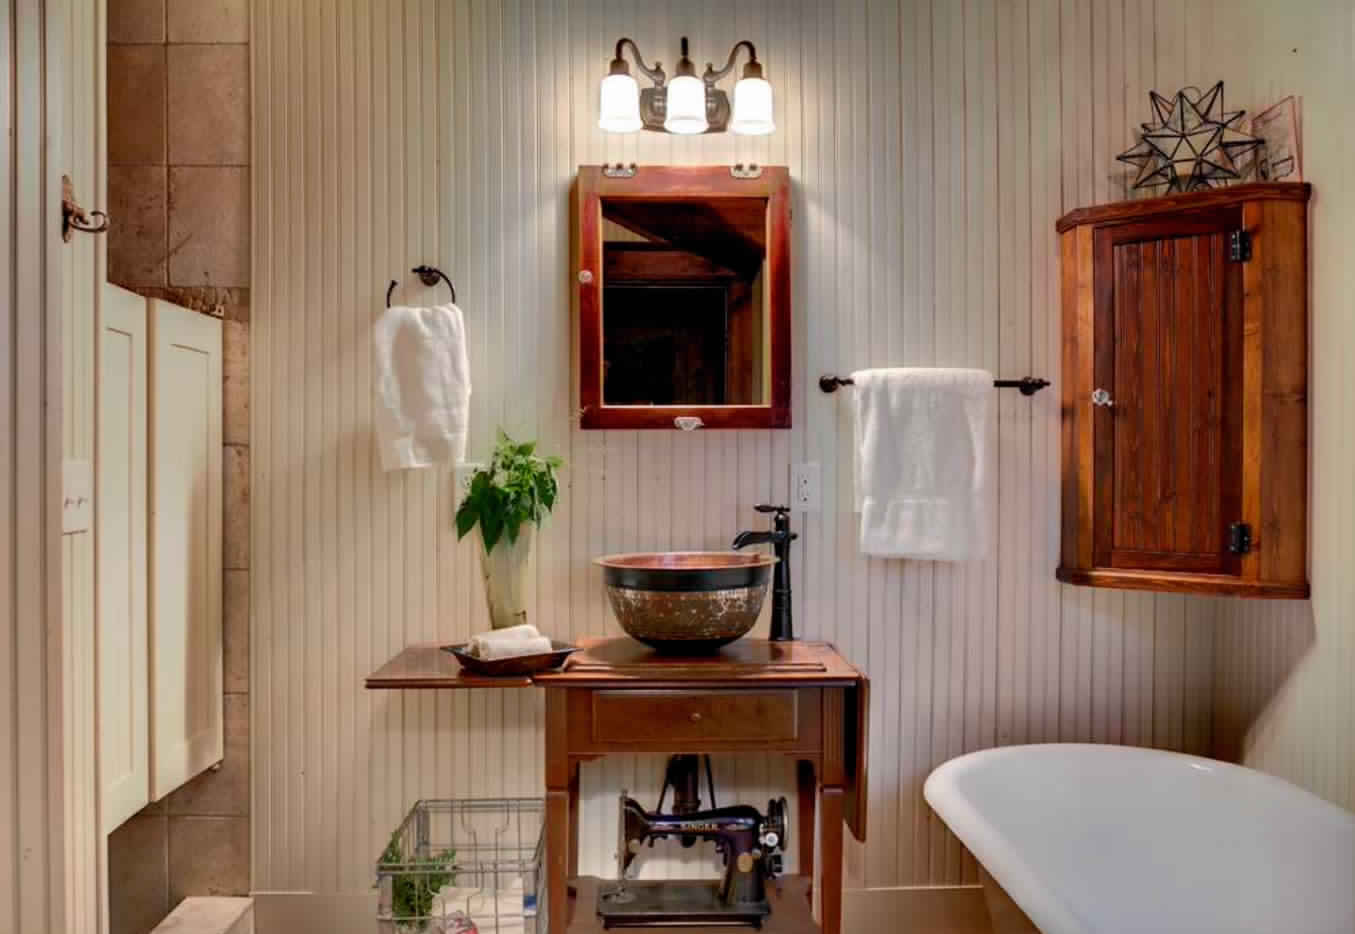 Rustic Bathroom Ideas-cabinet with mirror fronted